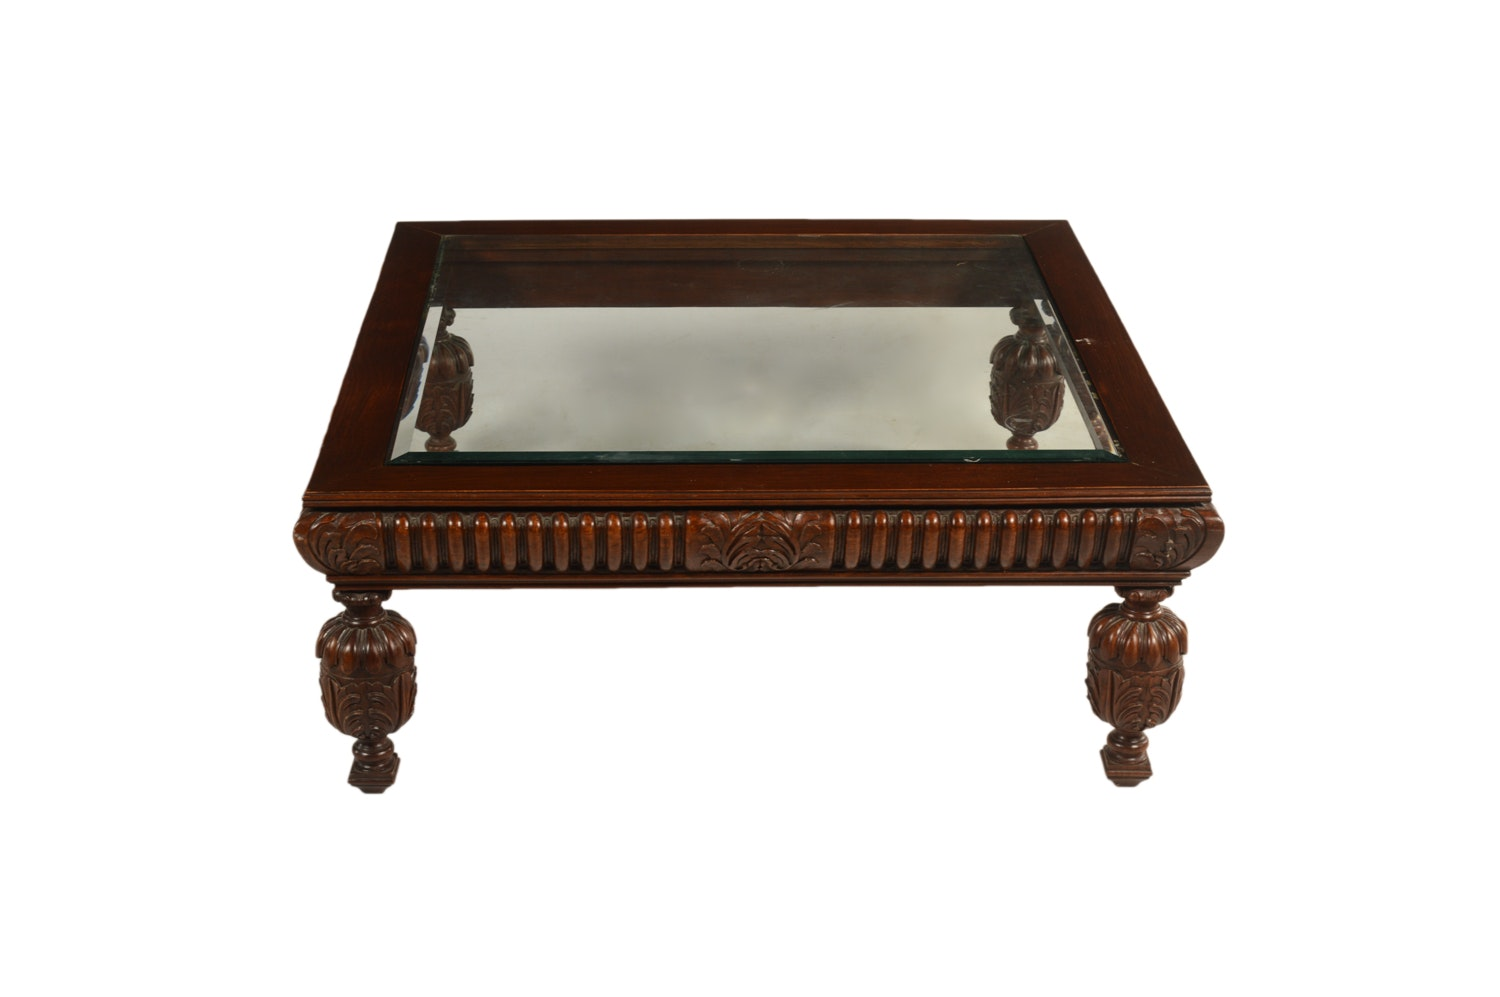 Neoclassical Style Glass Top Coffee Table, Late 20th Century